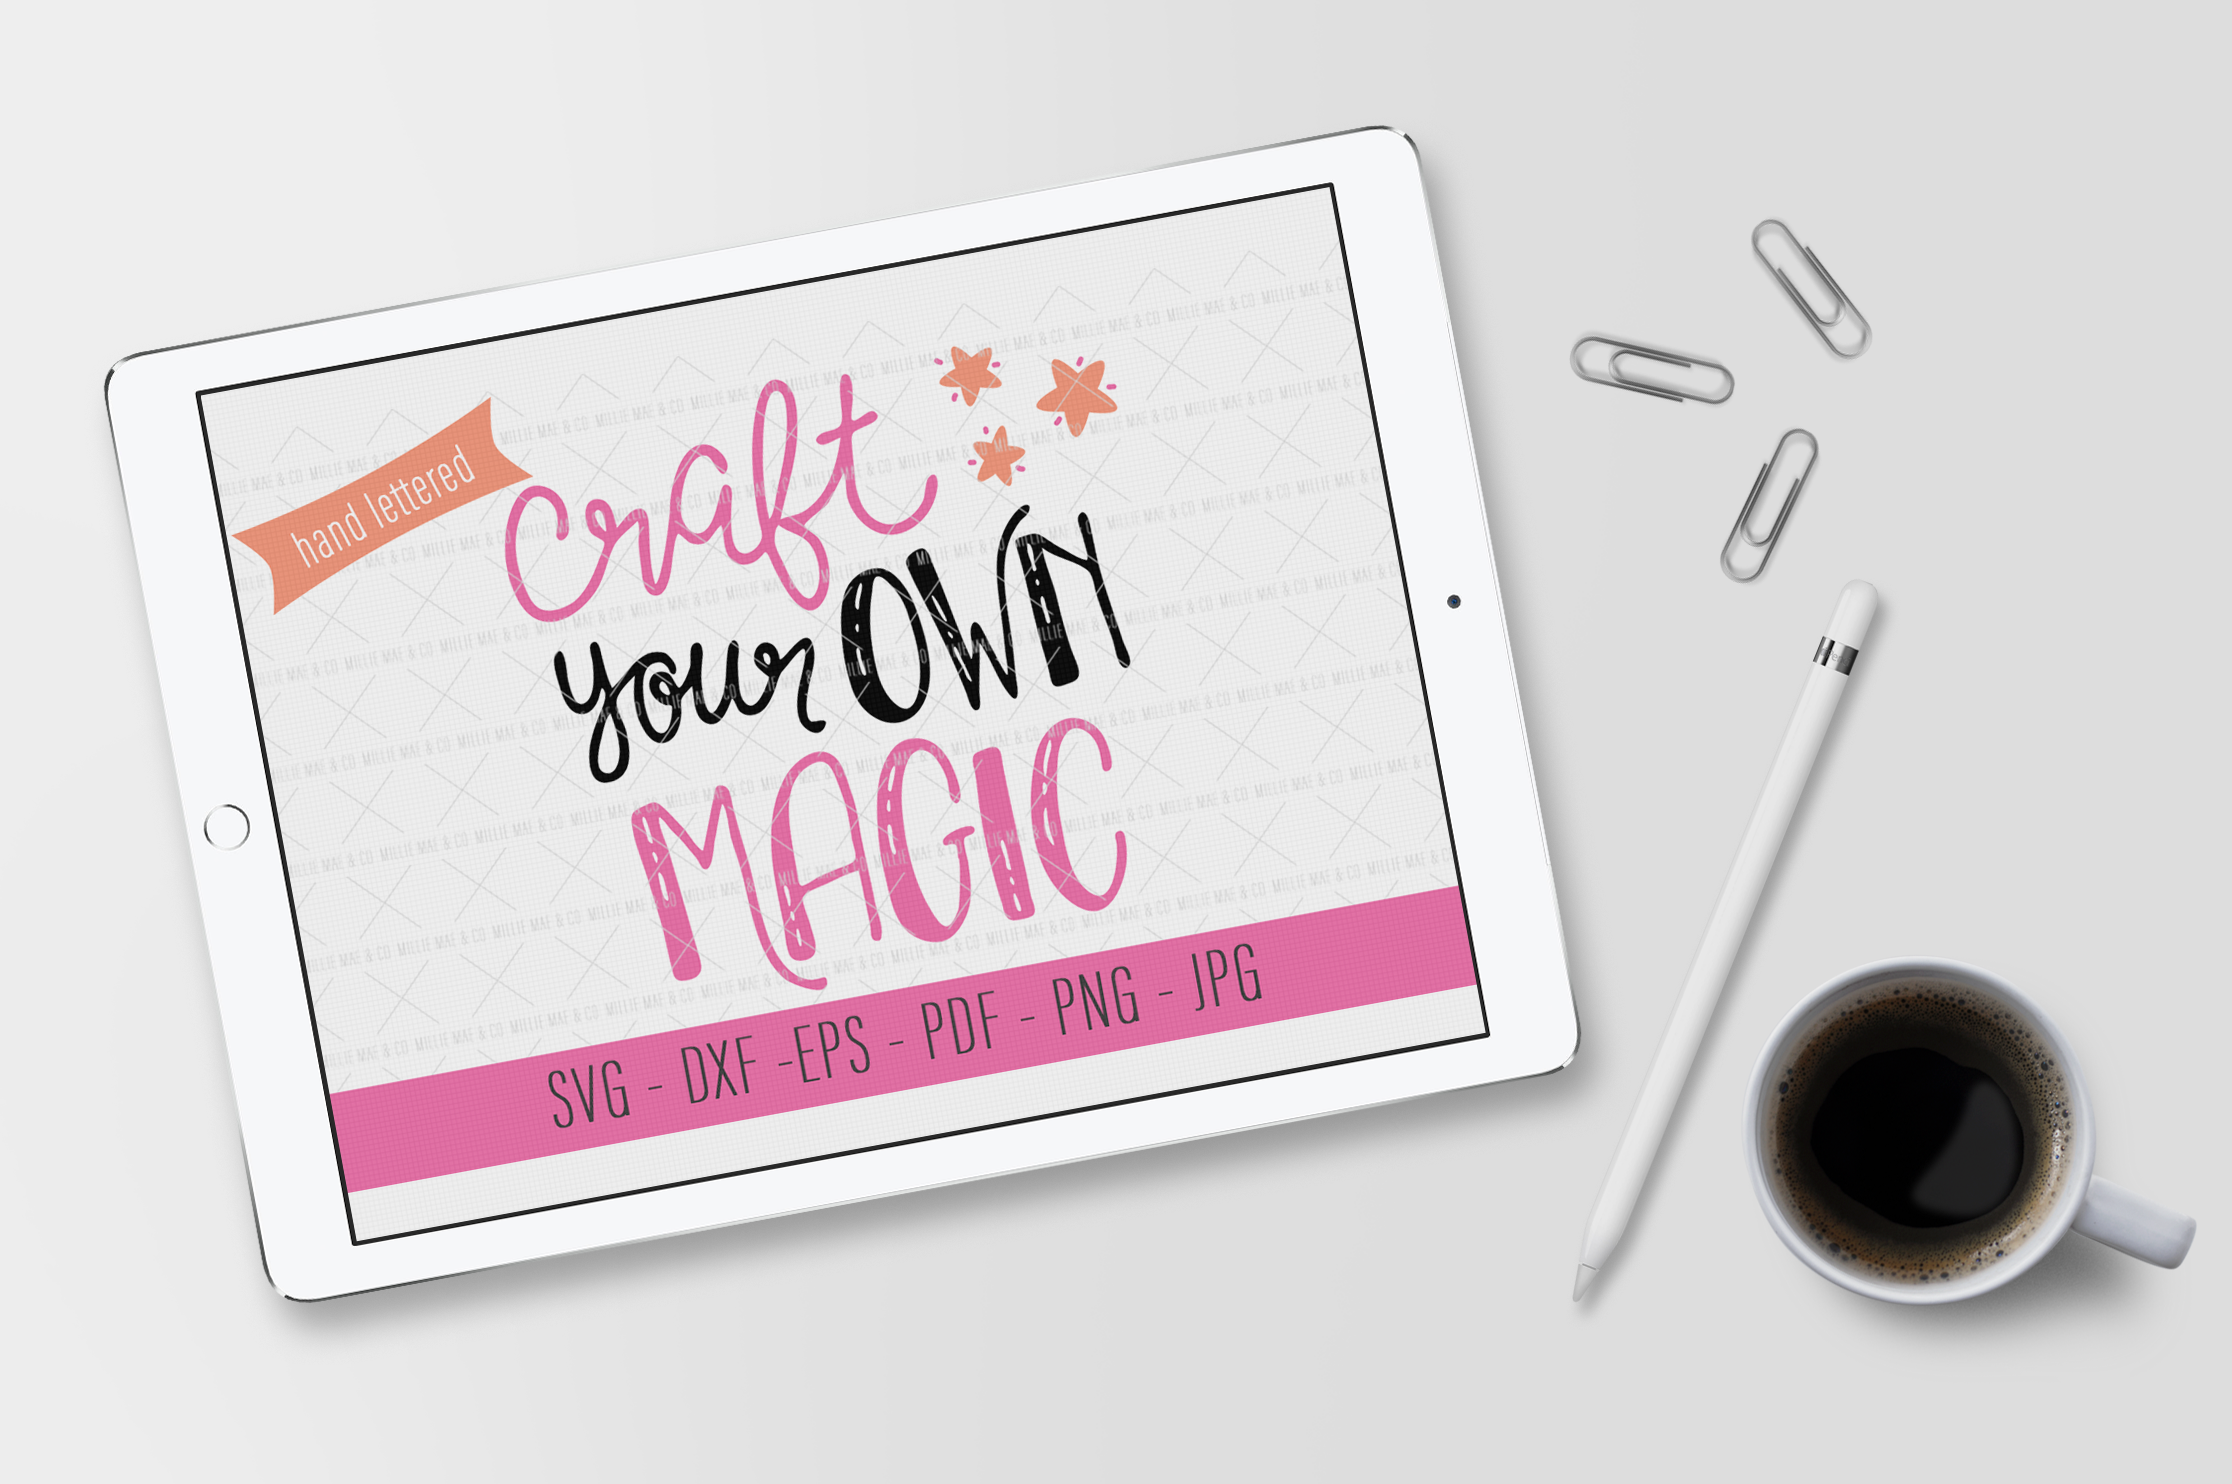 Craft Your Own Magic - SVG Cut File for Cricut and More example image 3